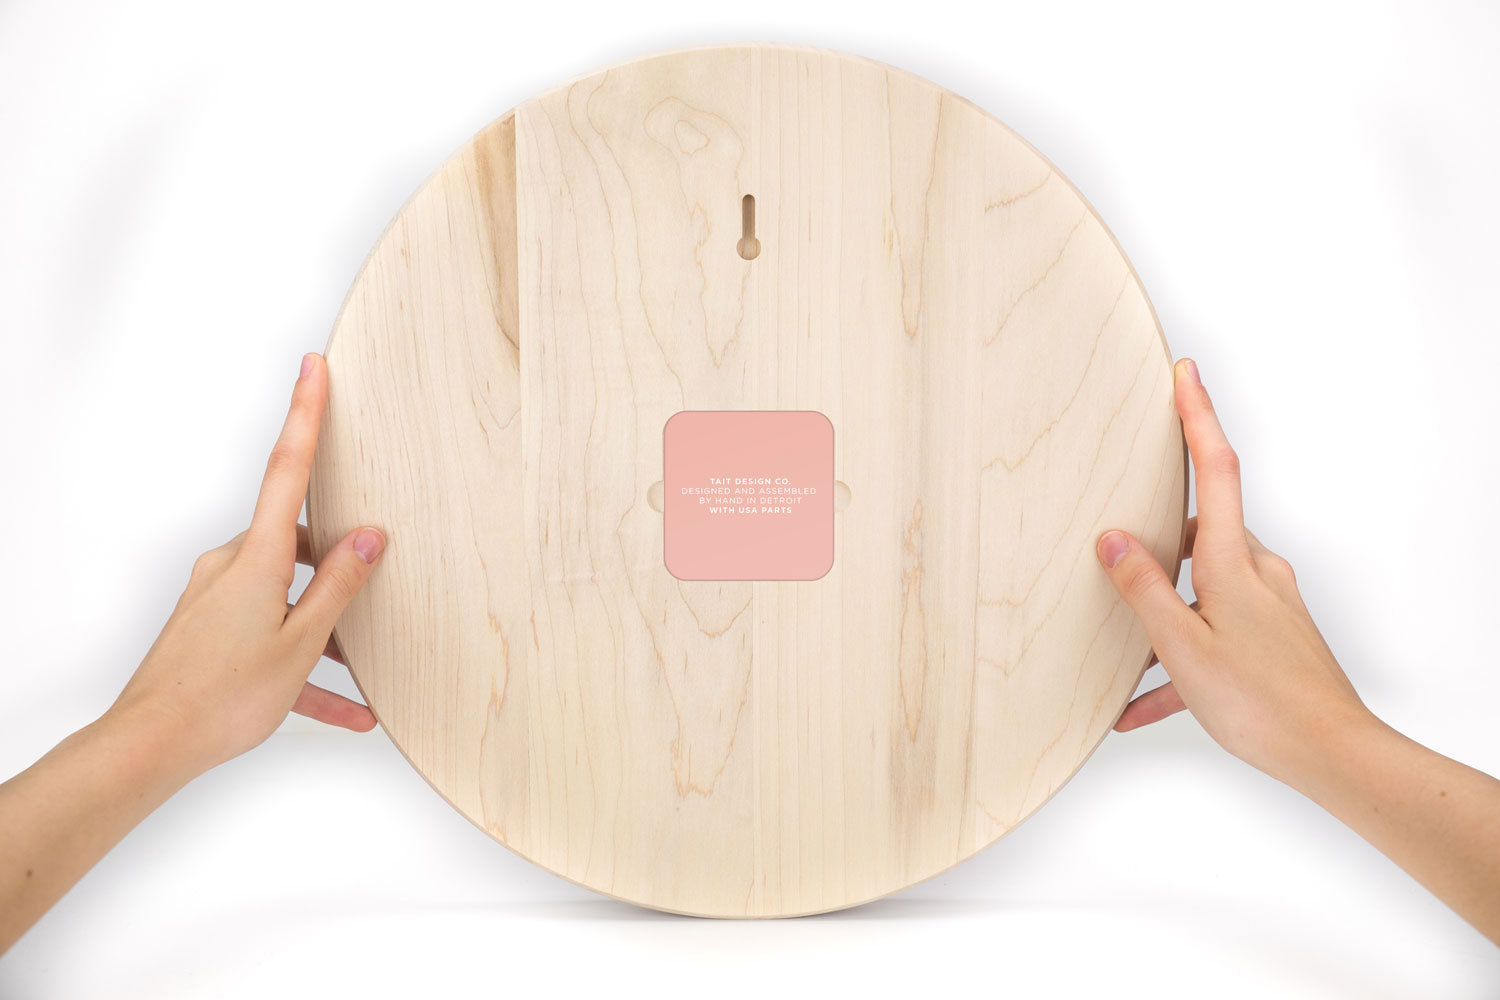 THE BACK - –MAGNETIC STEEL PANEL–Most clocks lack a back cover, leaving the movement and battery exposed. Ours features a back panel that is made from 100% American-made steel and attaches via magnets to protect the movement within.Just like the front dial, the back panel features a hand-pulled two-color screen print.